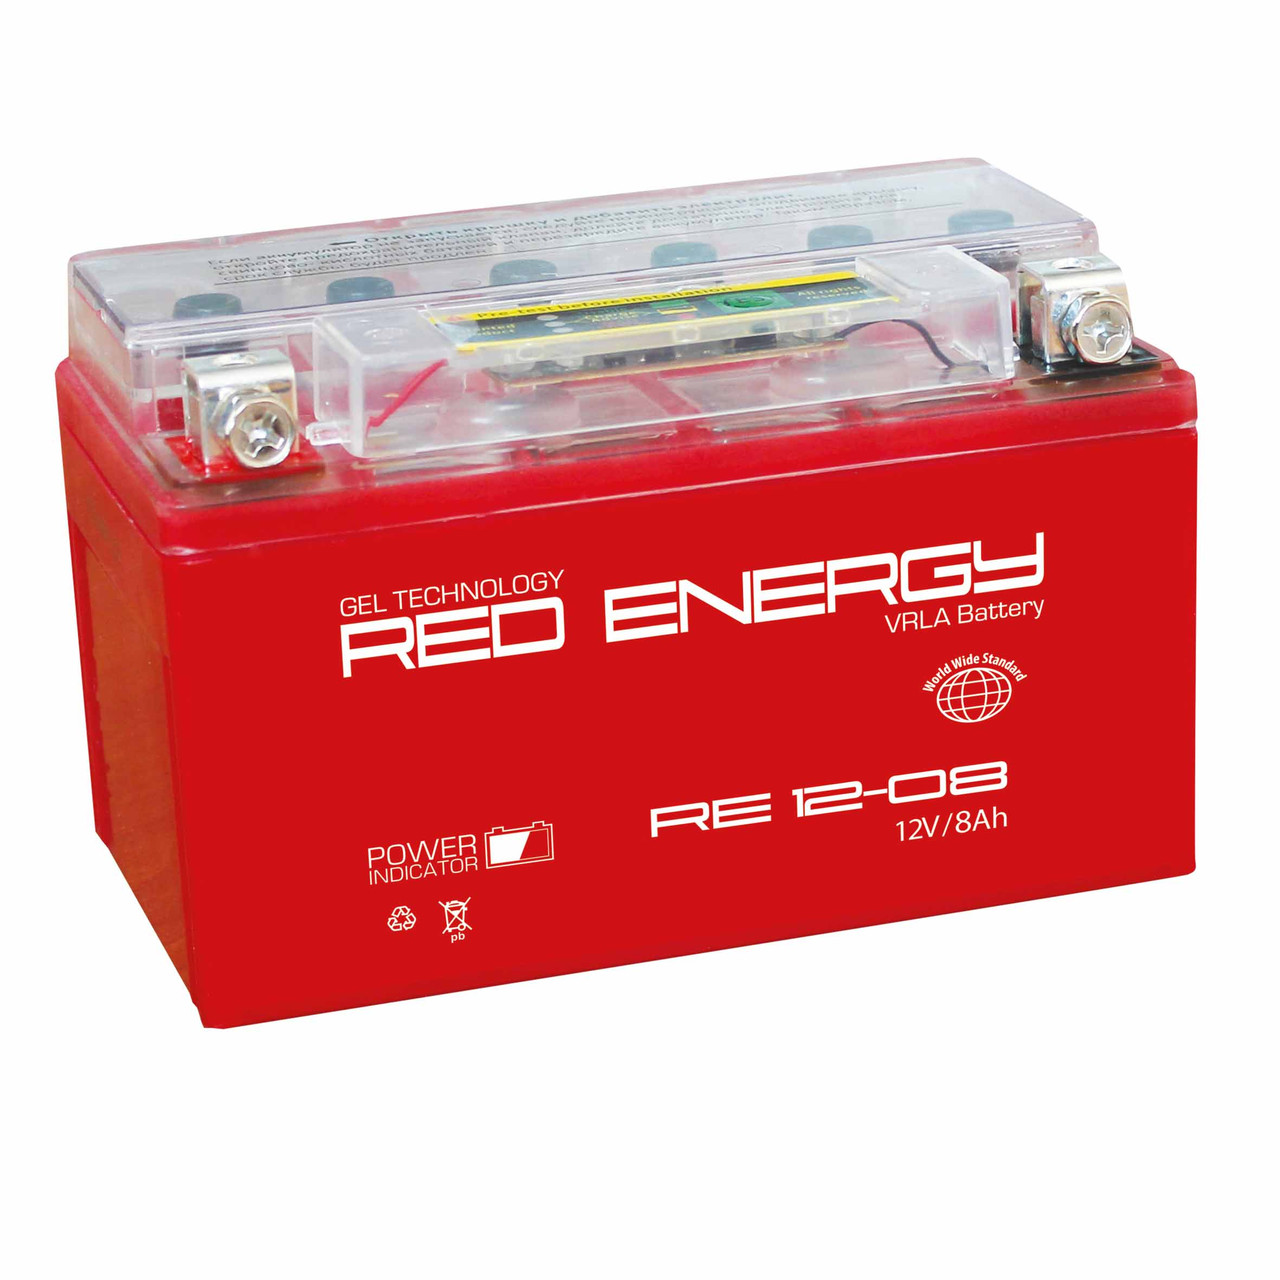 "АККУМУЛЯТОР RED ENERGY RE 12-08 (150Х66Х95) - ИП СЕМЁНОВ В.Н. - ИНТЕРНЕТ МАГАЗИН ""МотоСтиль+""  в Жезказгане"